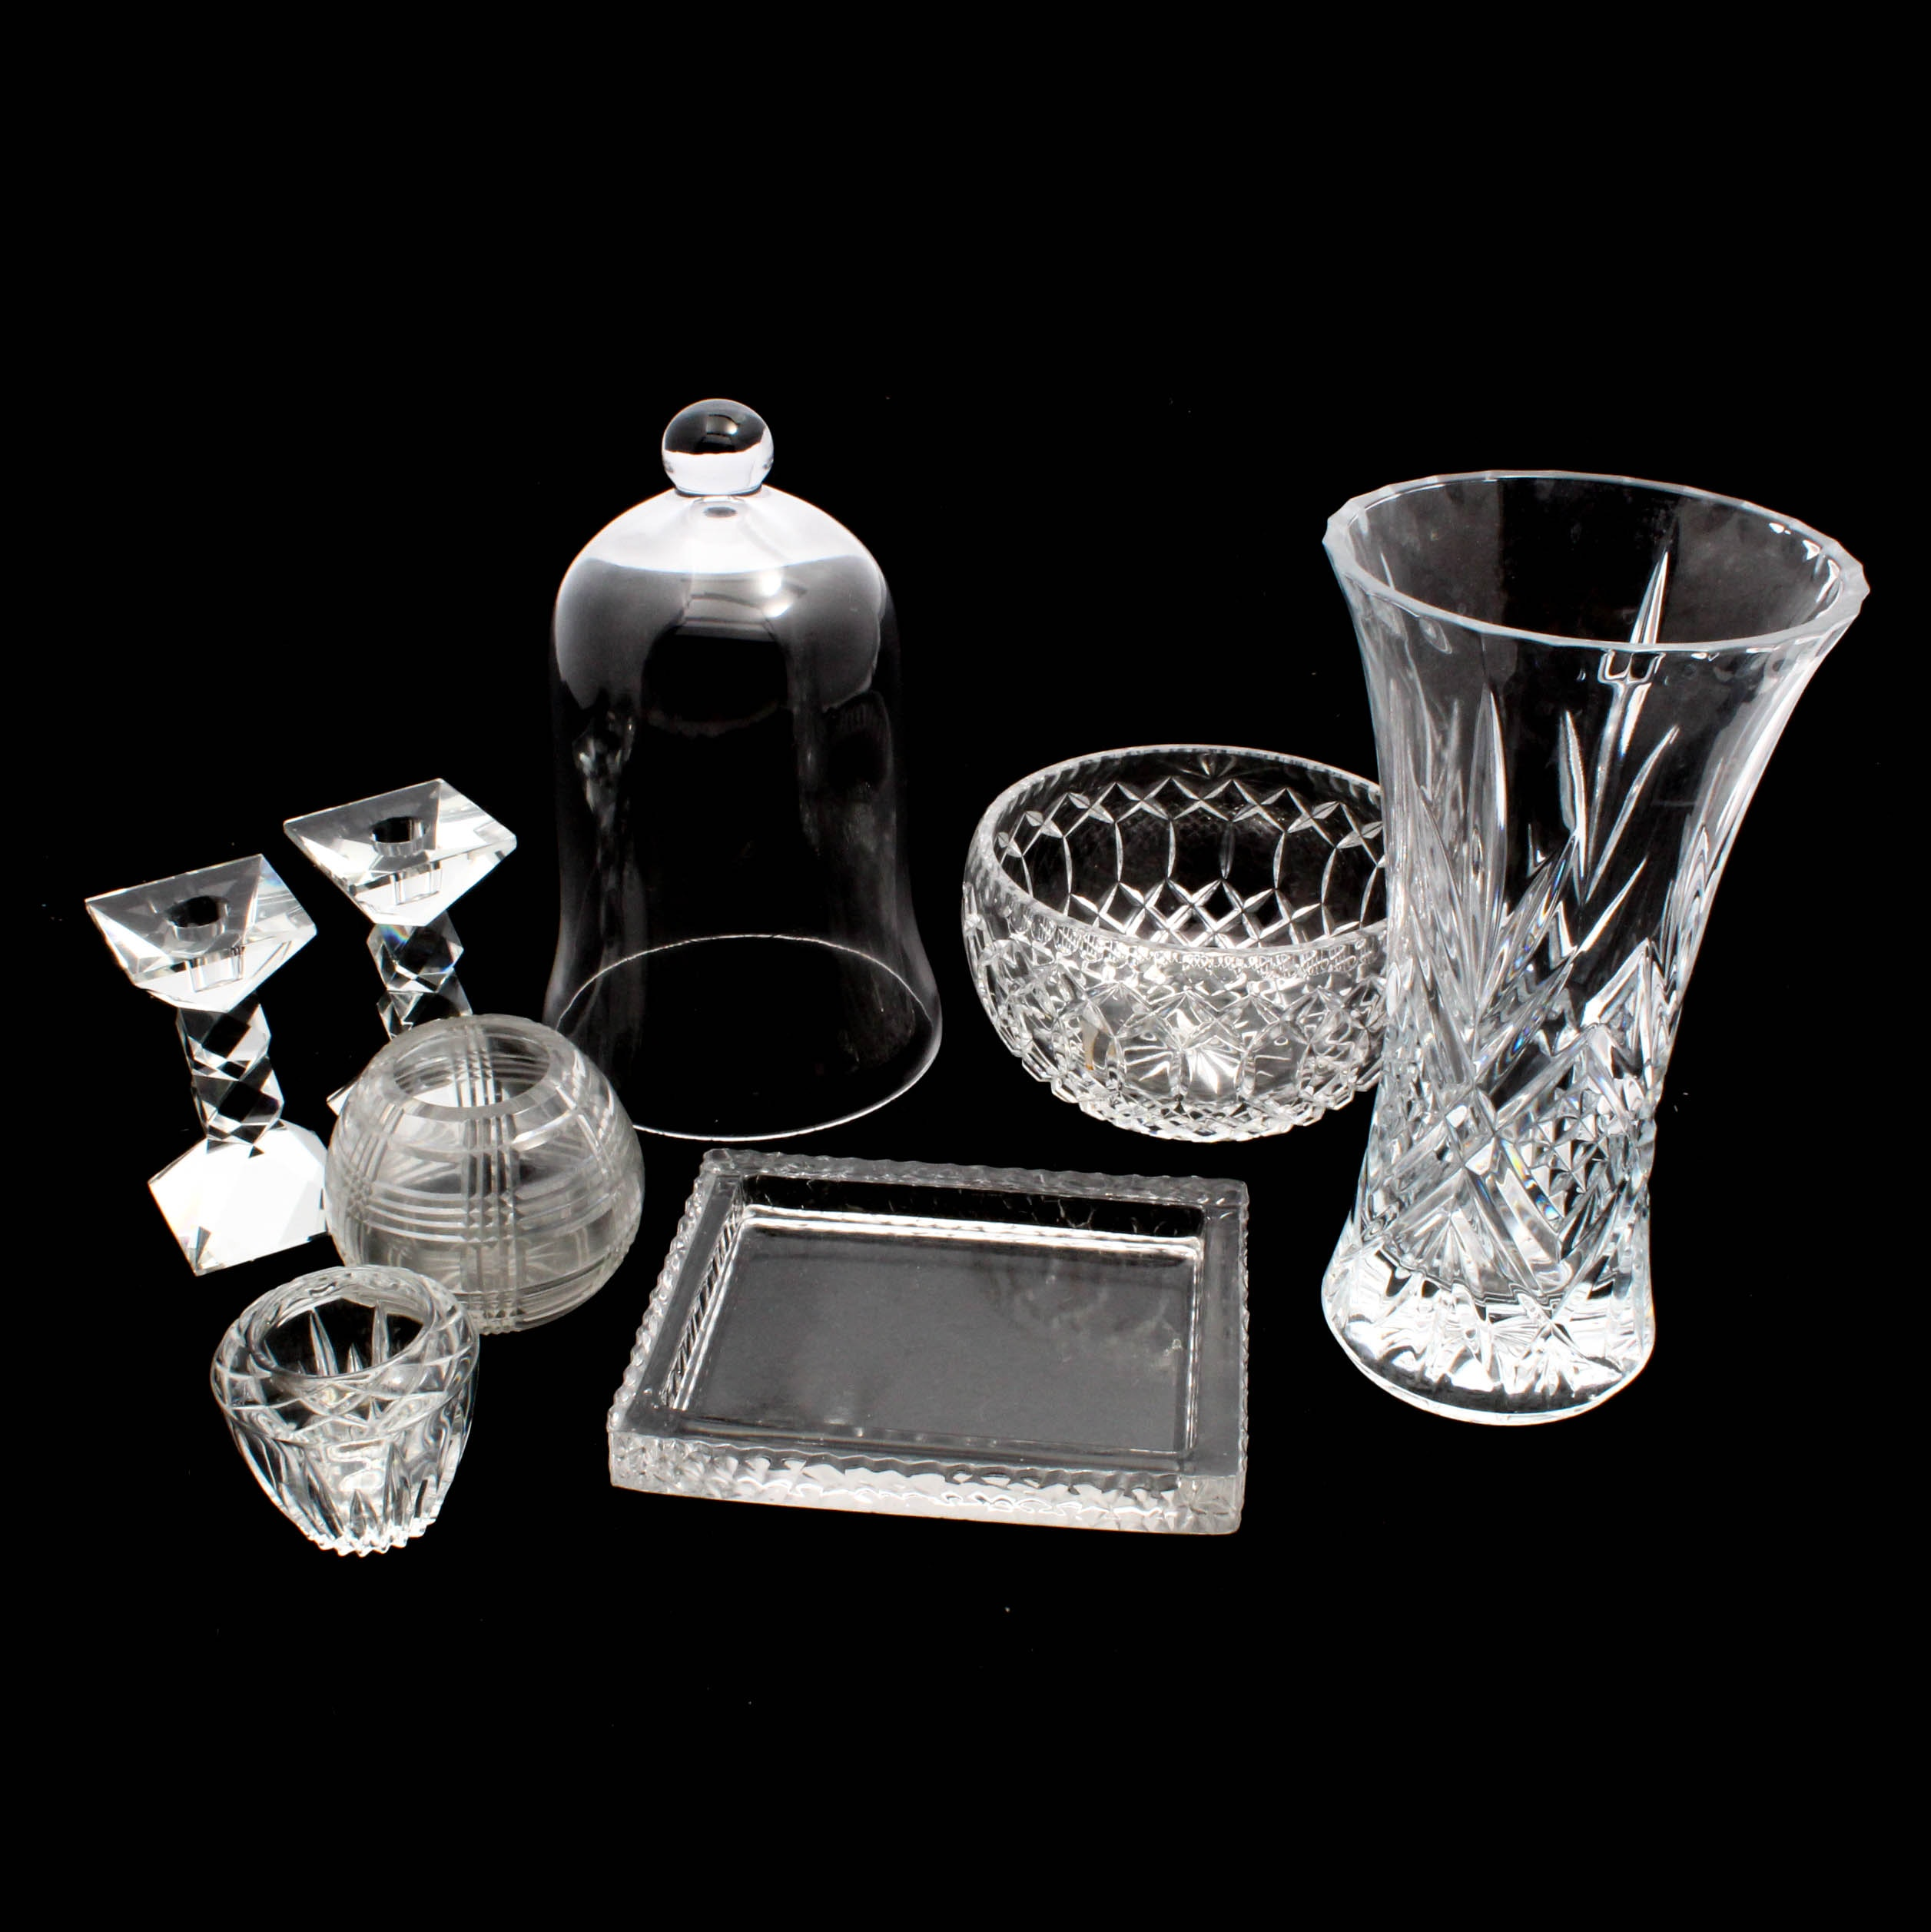 Oleg Cassini Candlesticks with Assorted Glass and Crystal Tableware